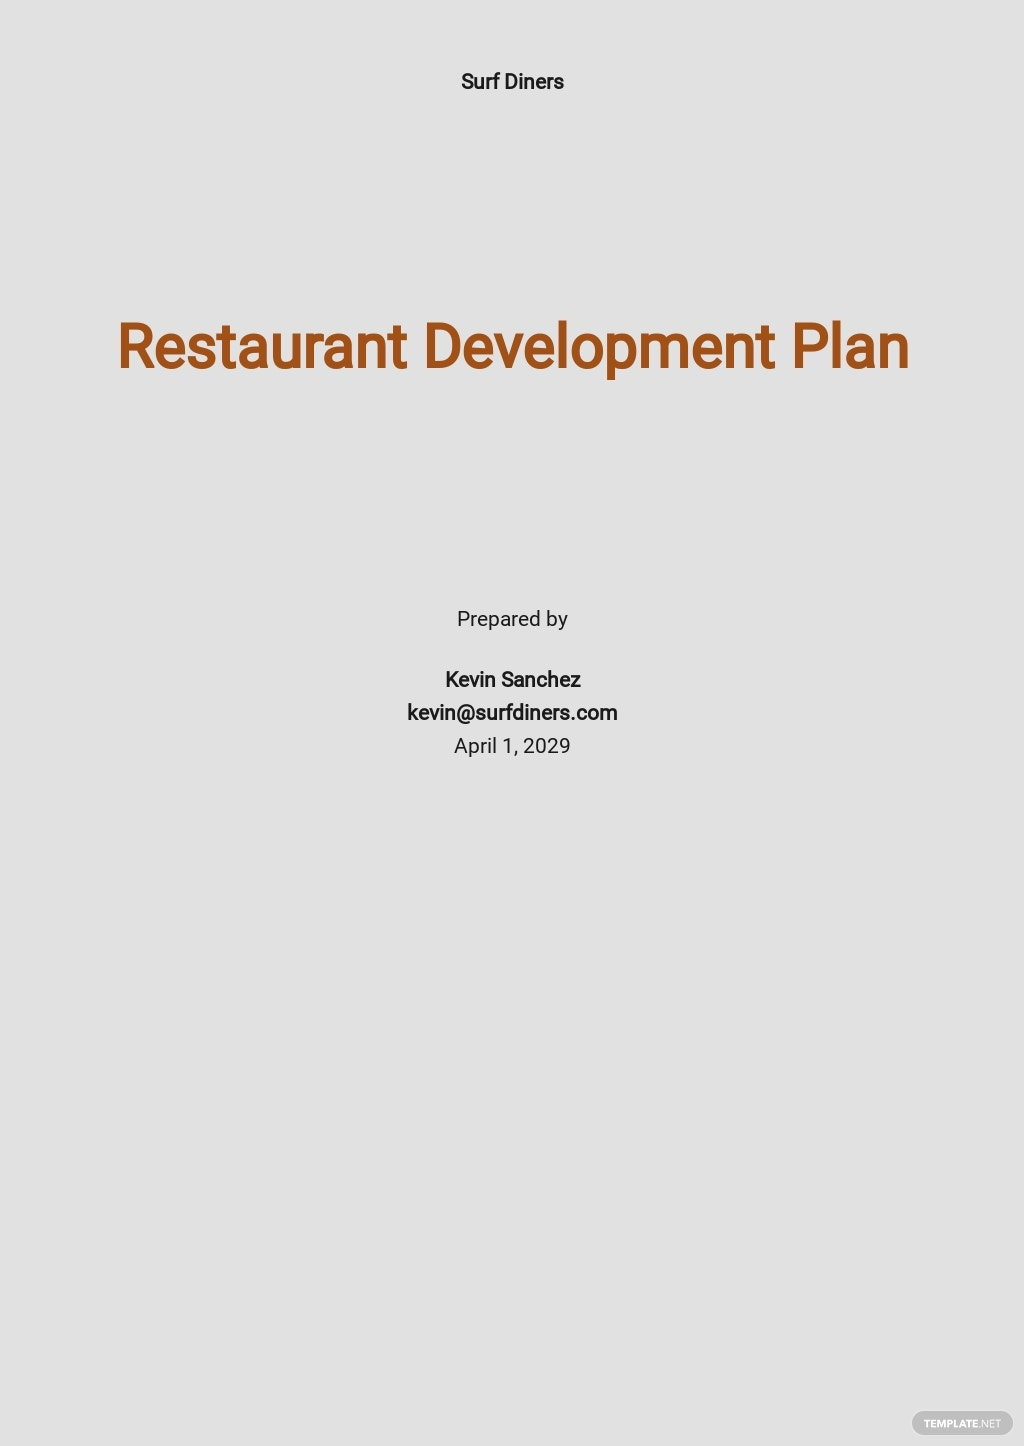 Restaurant Development Plan Template